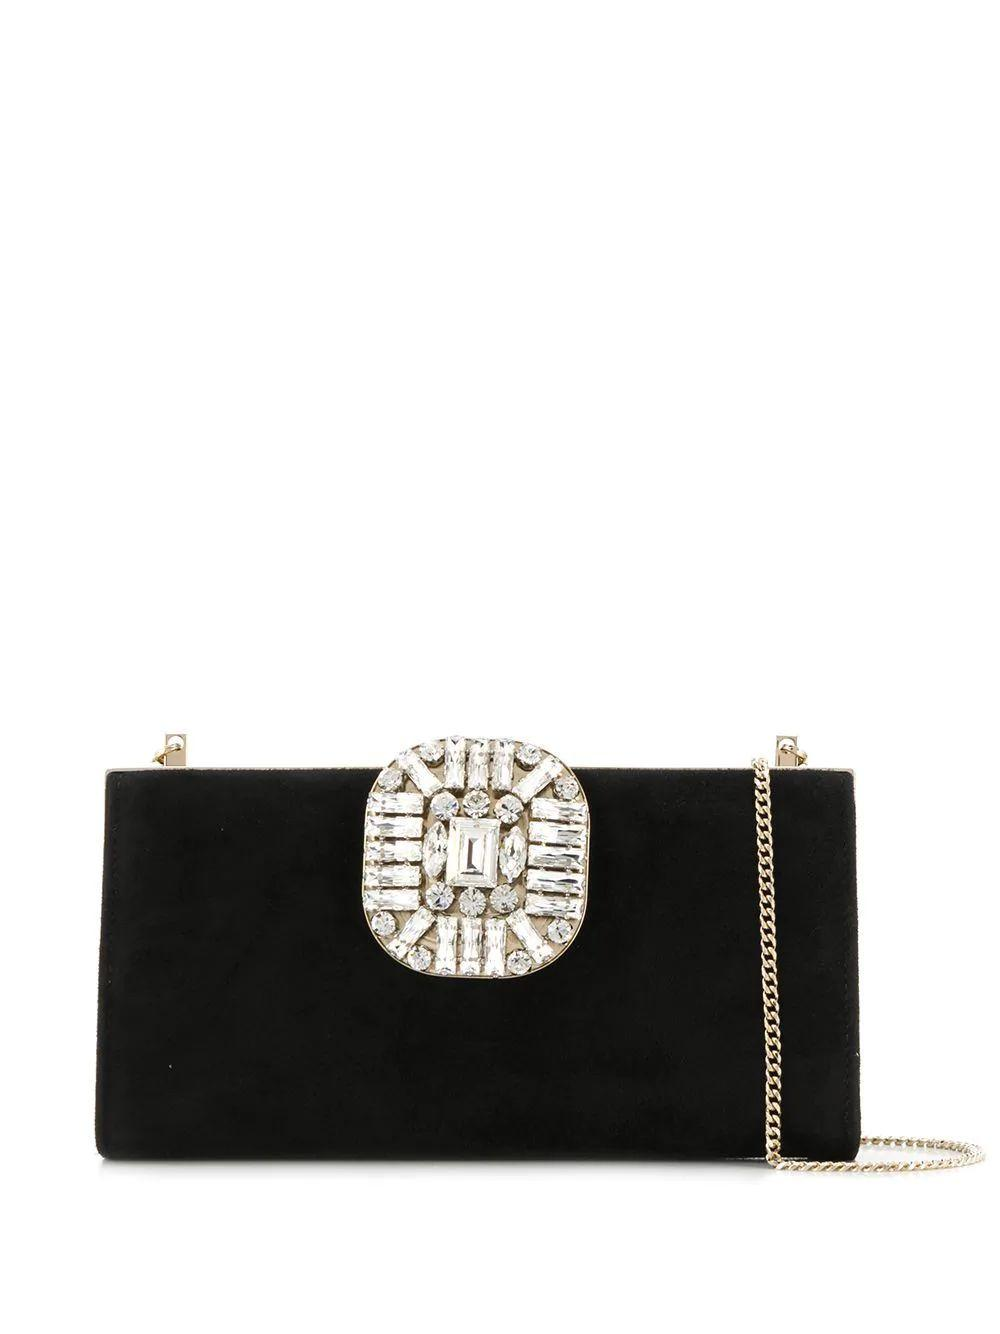 Suede Clutch With Crystal Item # LEONIS-SUE